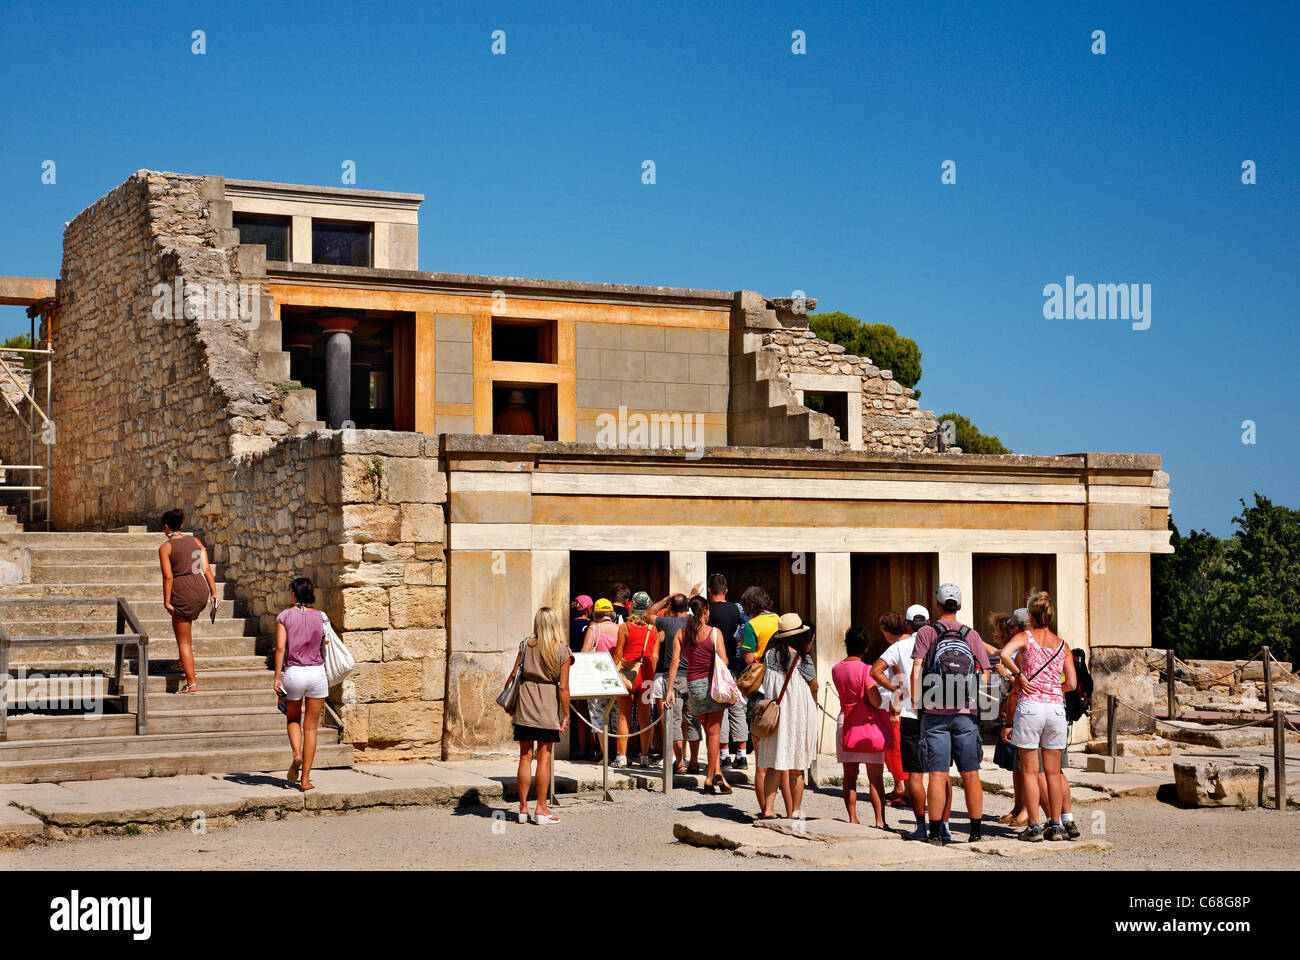 A group of tourists waiting to enter to the Hall of the Throne at the Minoan Palace of Knossos, Herakleion, Crete, - Stock Image